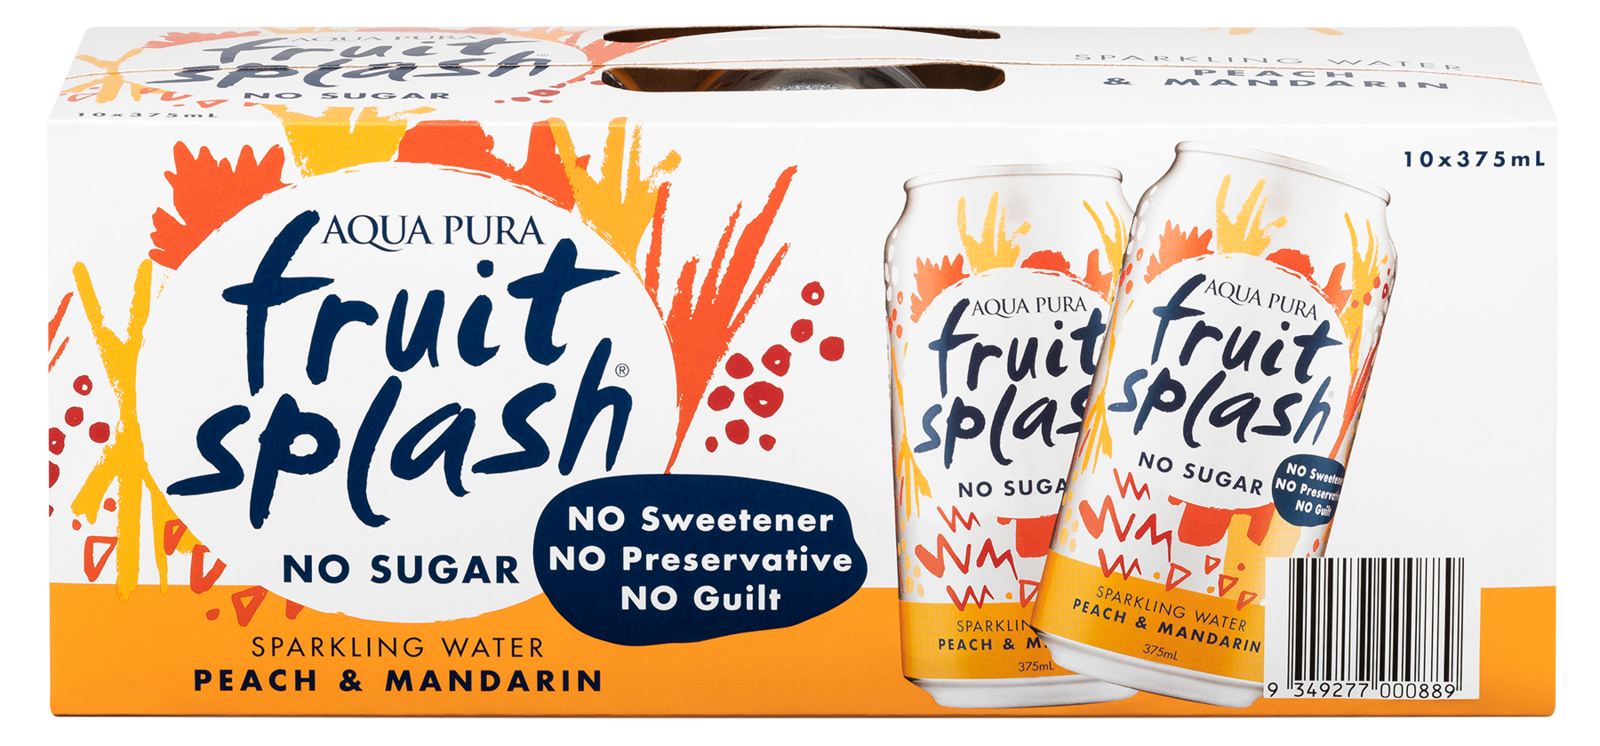 Aqua Pura Fruit Splash Peach & Mandarin 375ml (10 Pack) image